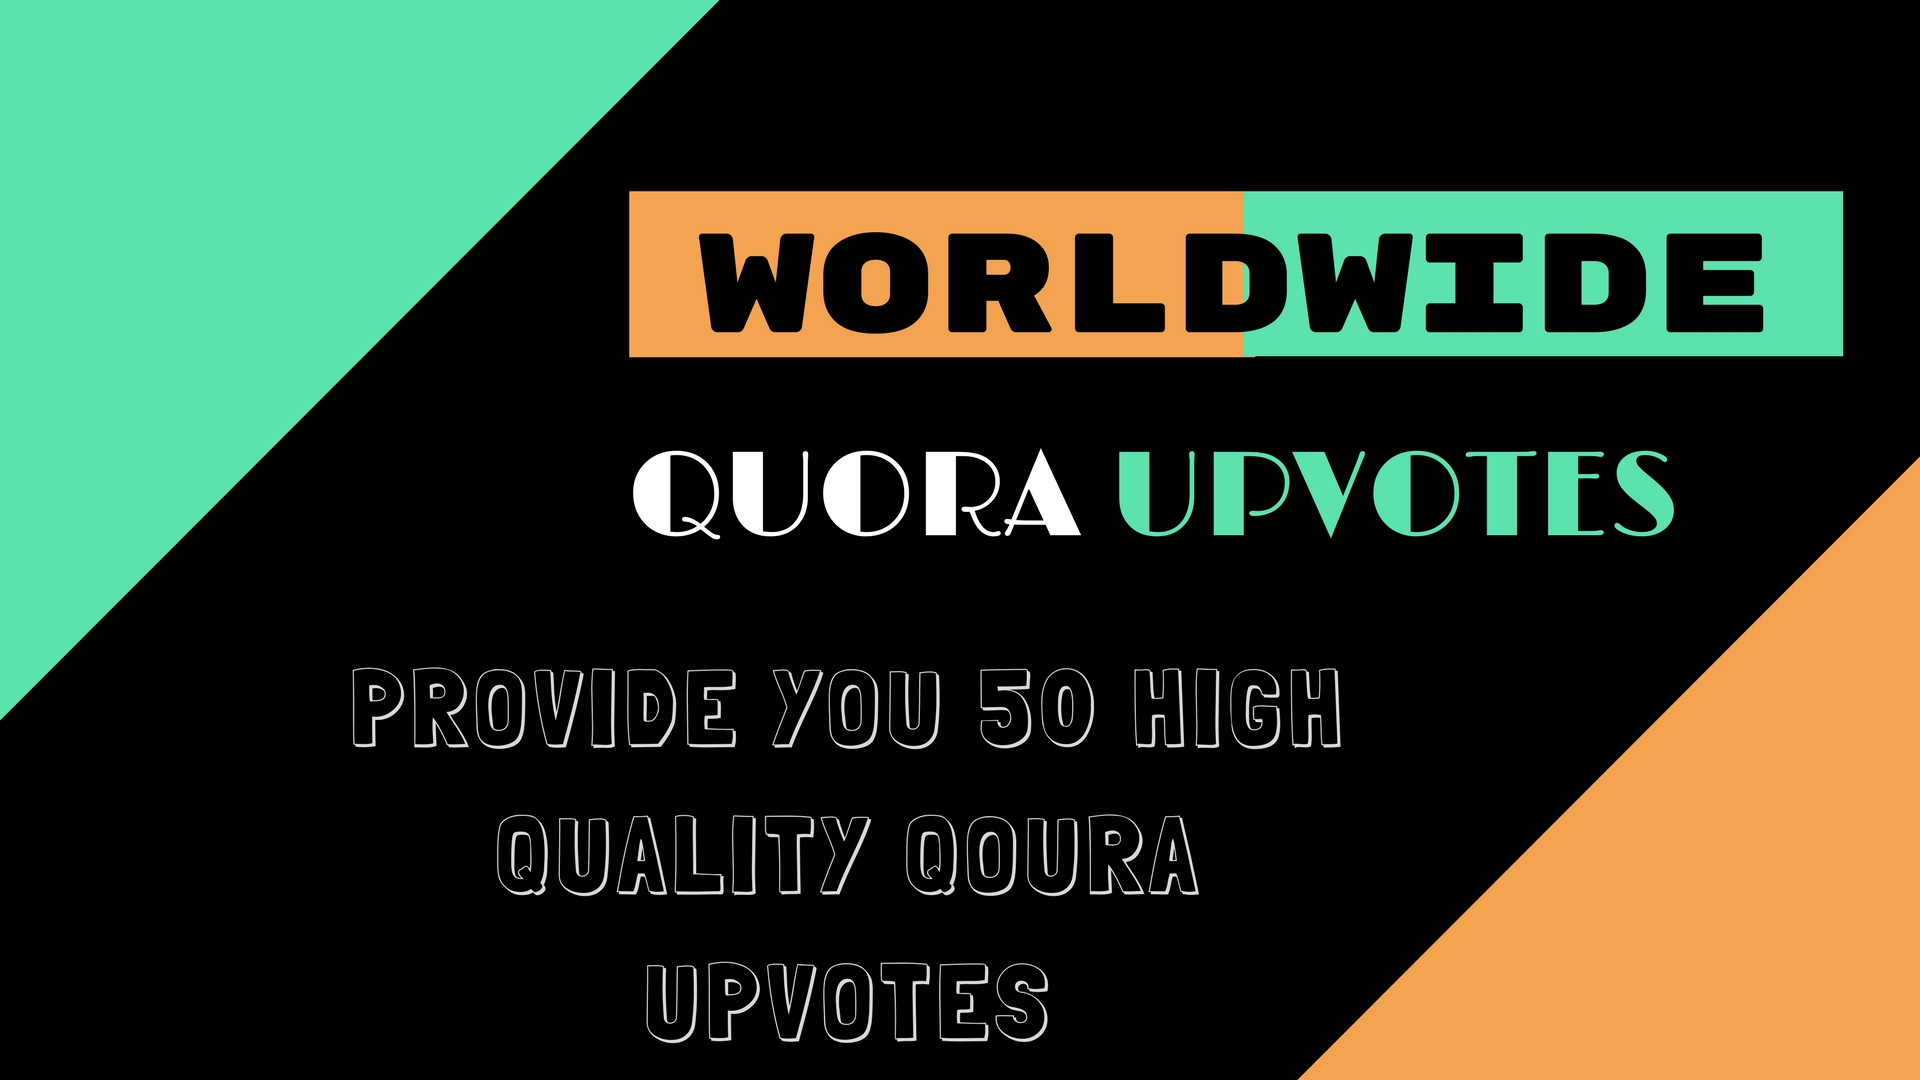 Provide You 50 High Quality Qoura upvotes